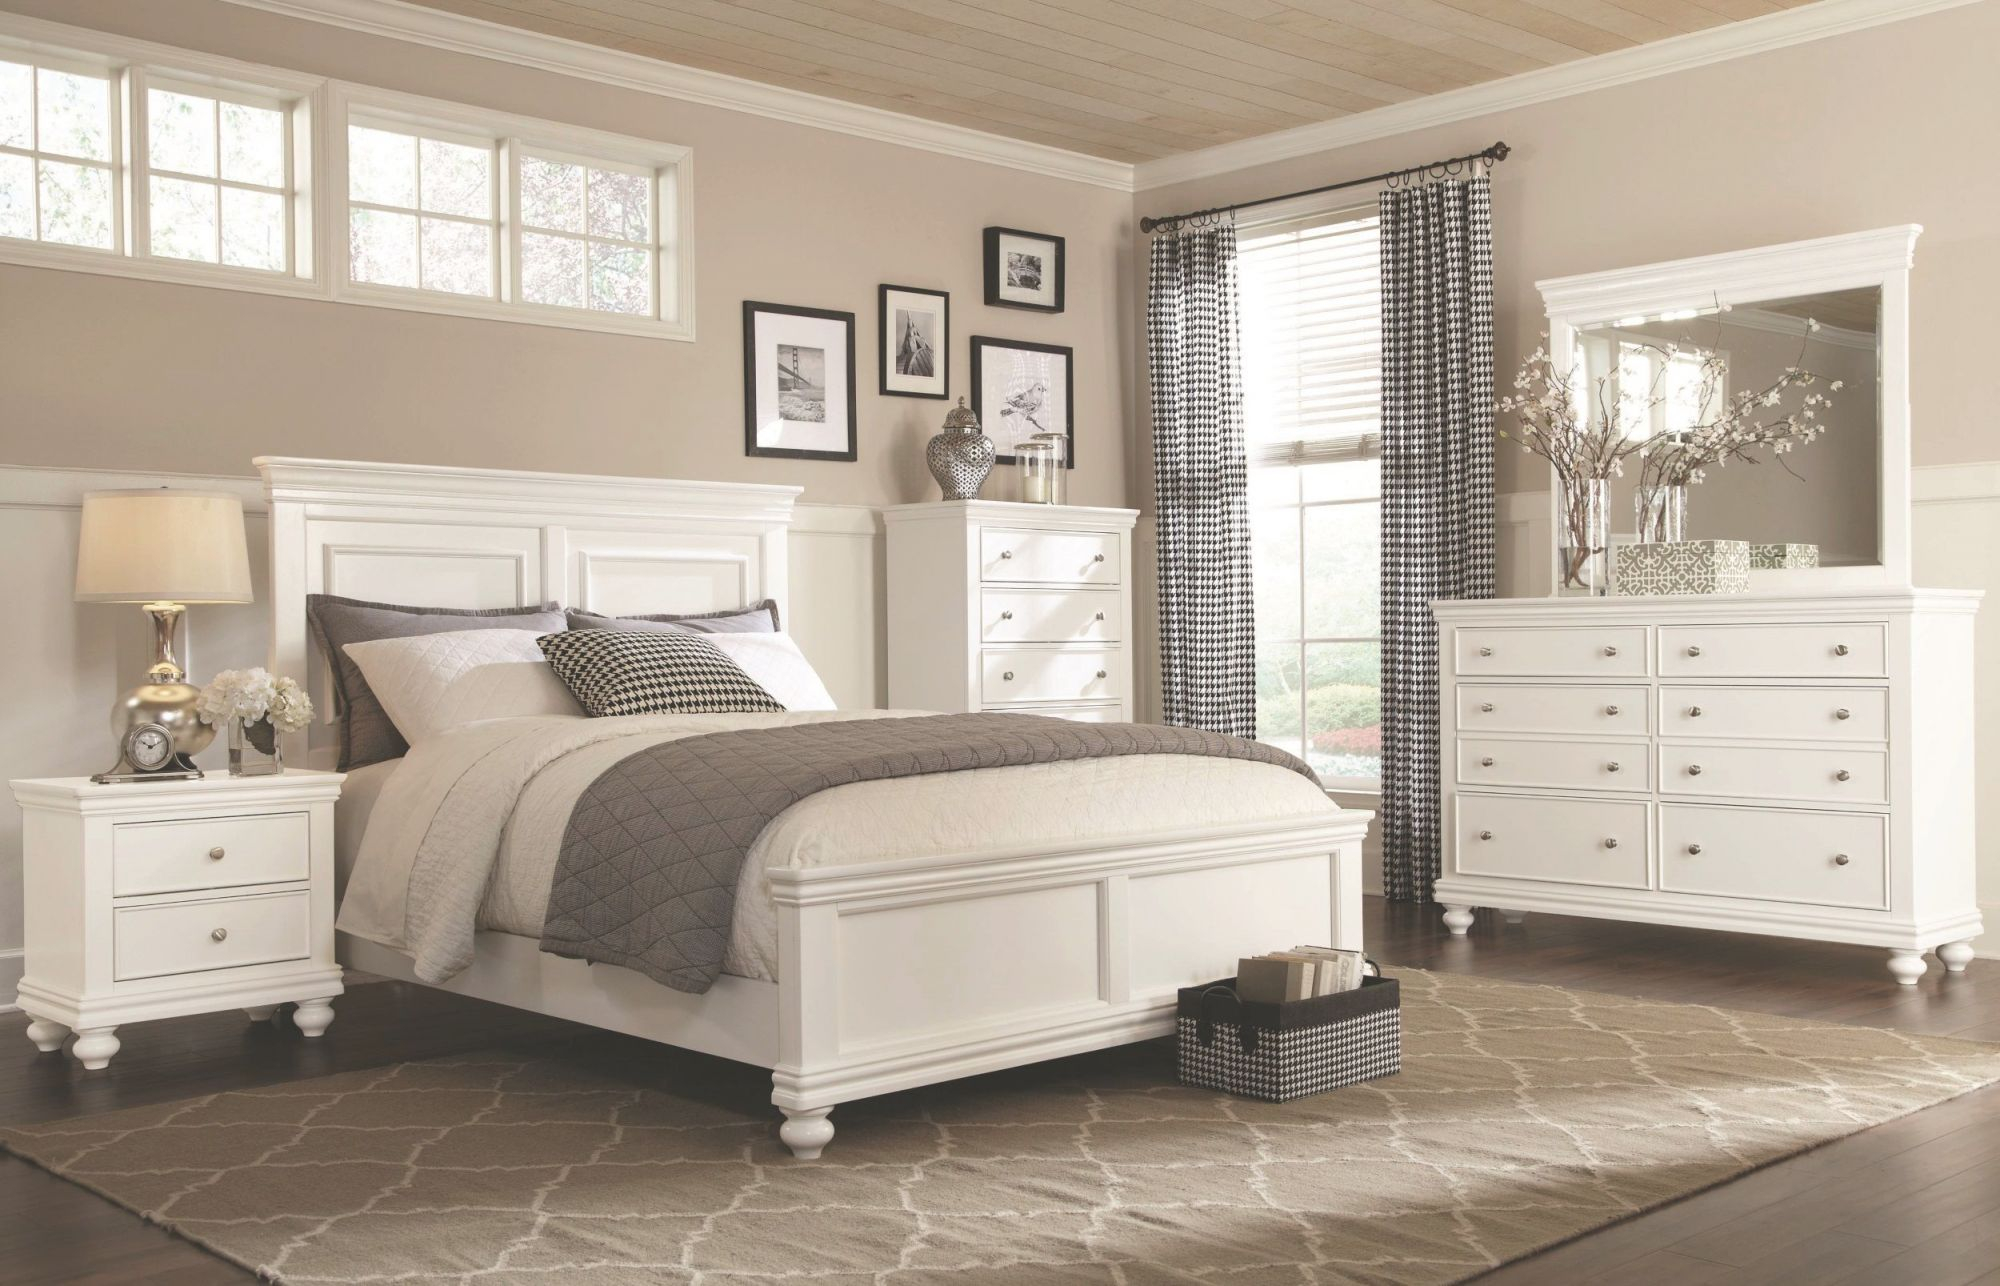 White 4 Piece Queen Bedroom Set - Essex In 2019 | White inside Beautiful Cheap White Bedroom Furniture Sets